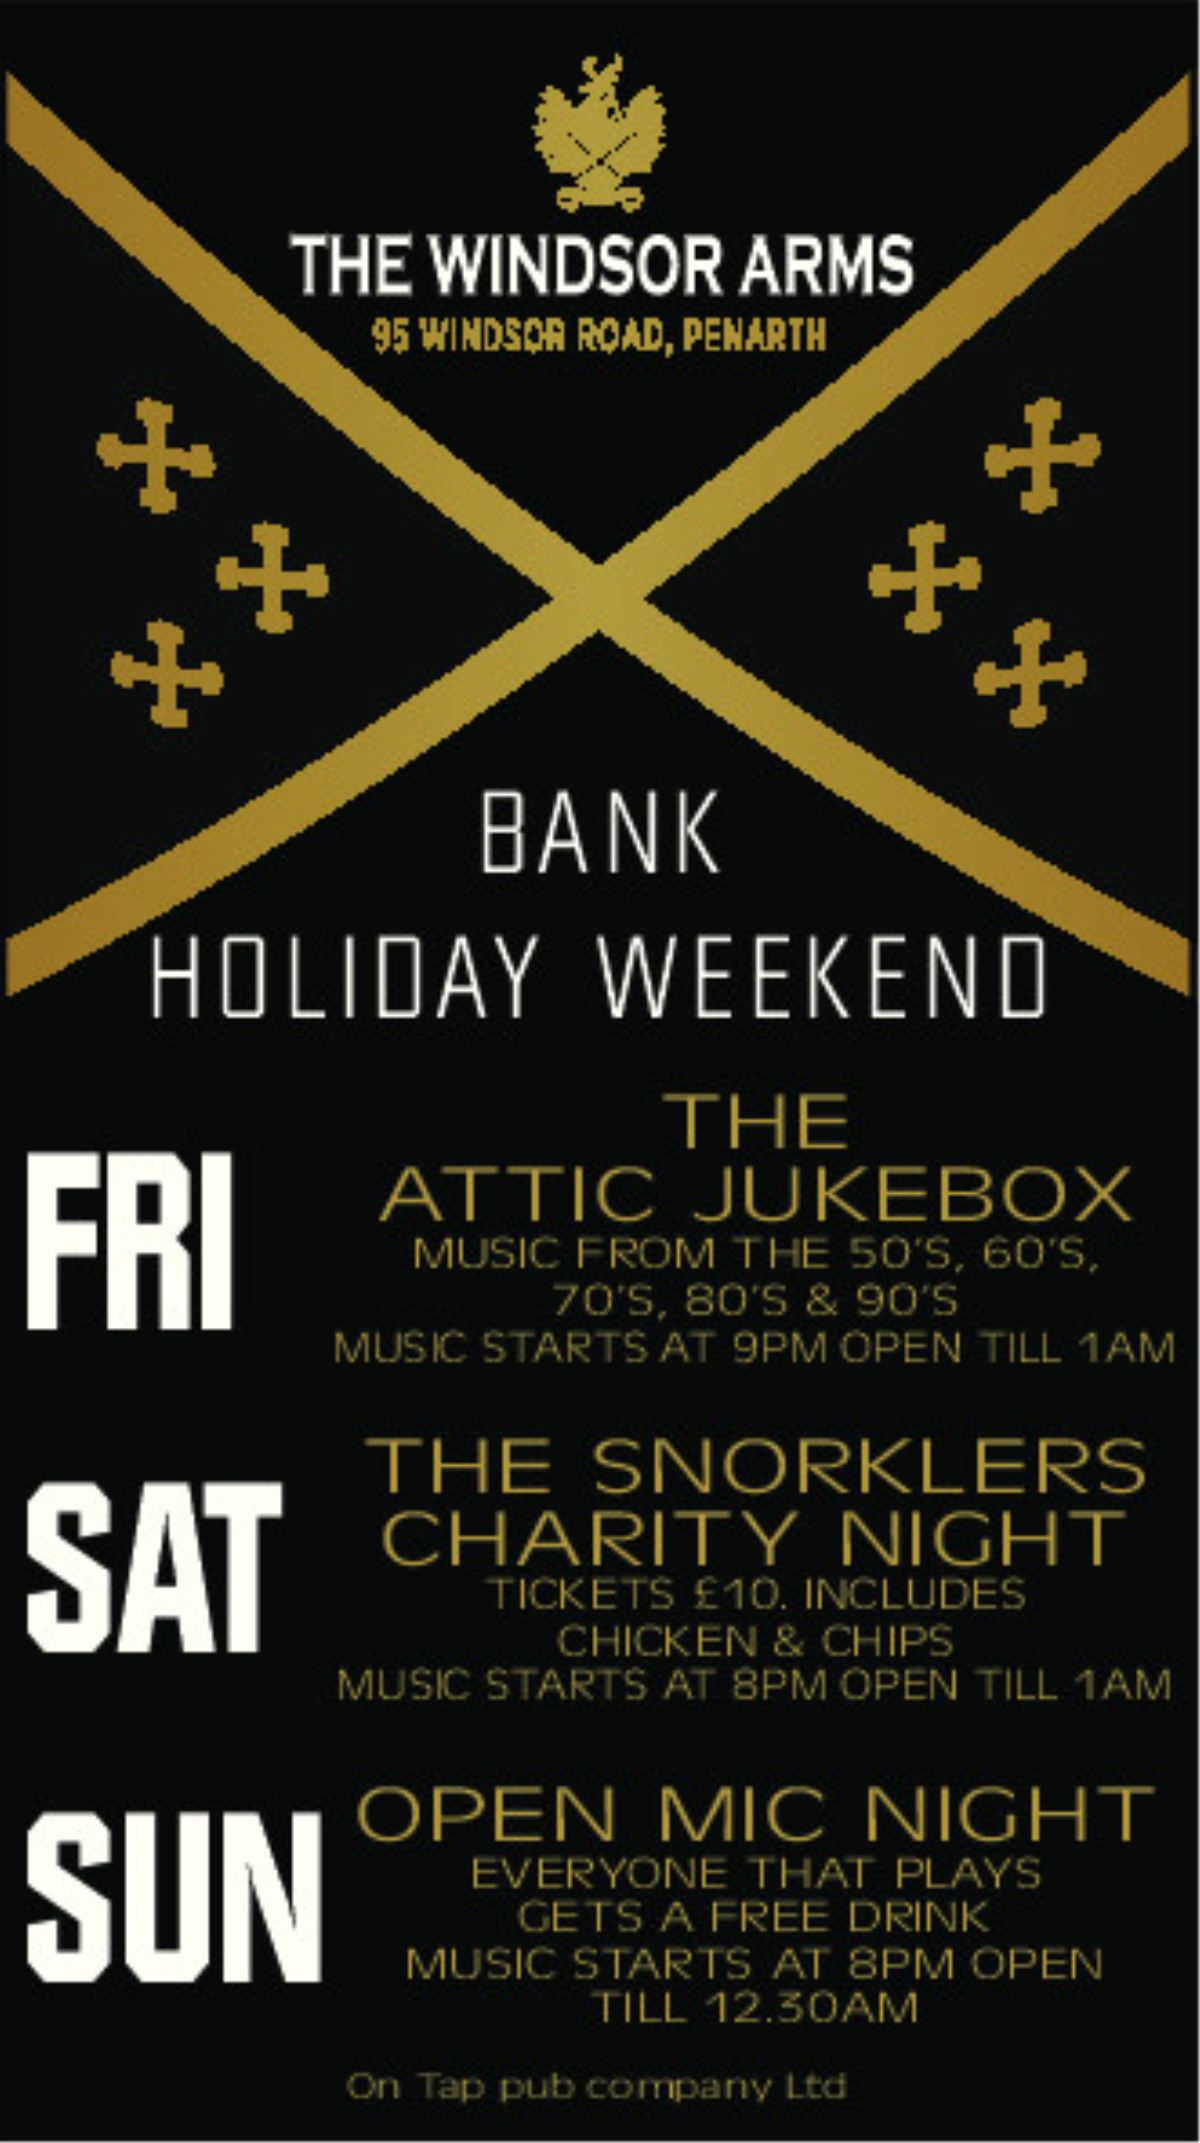 POSTER: The Windsor Arms is set to celebrate the Bank Holiday Weekend in style